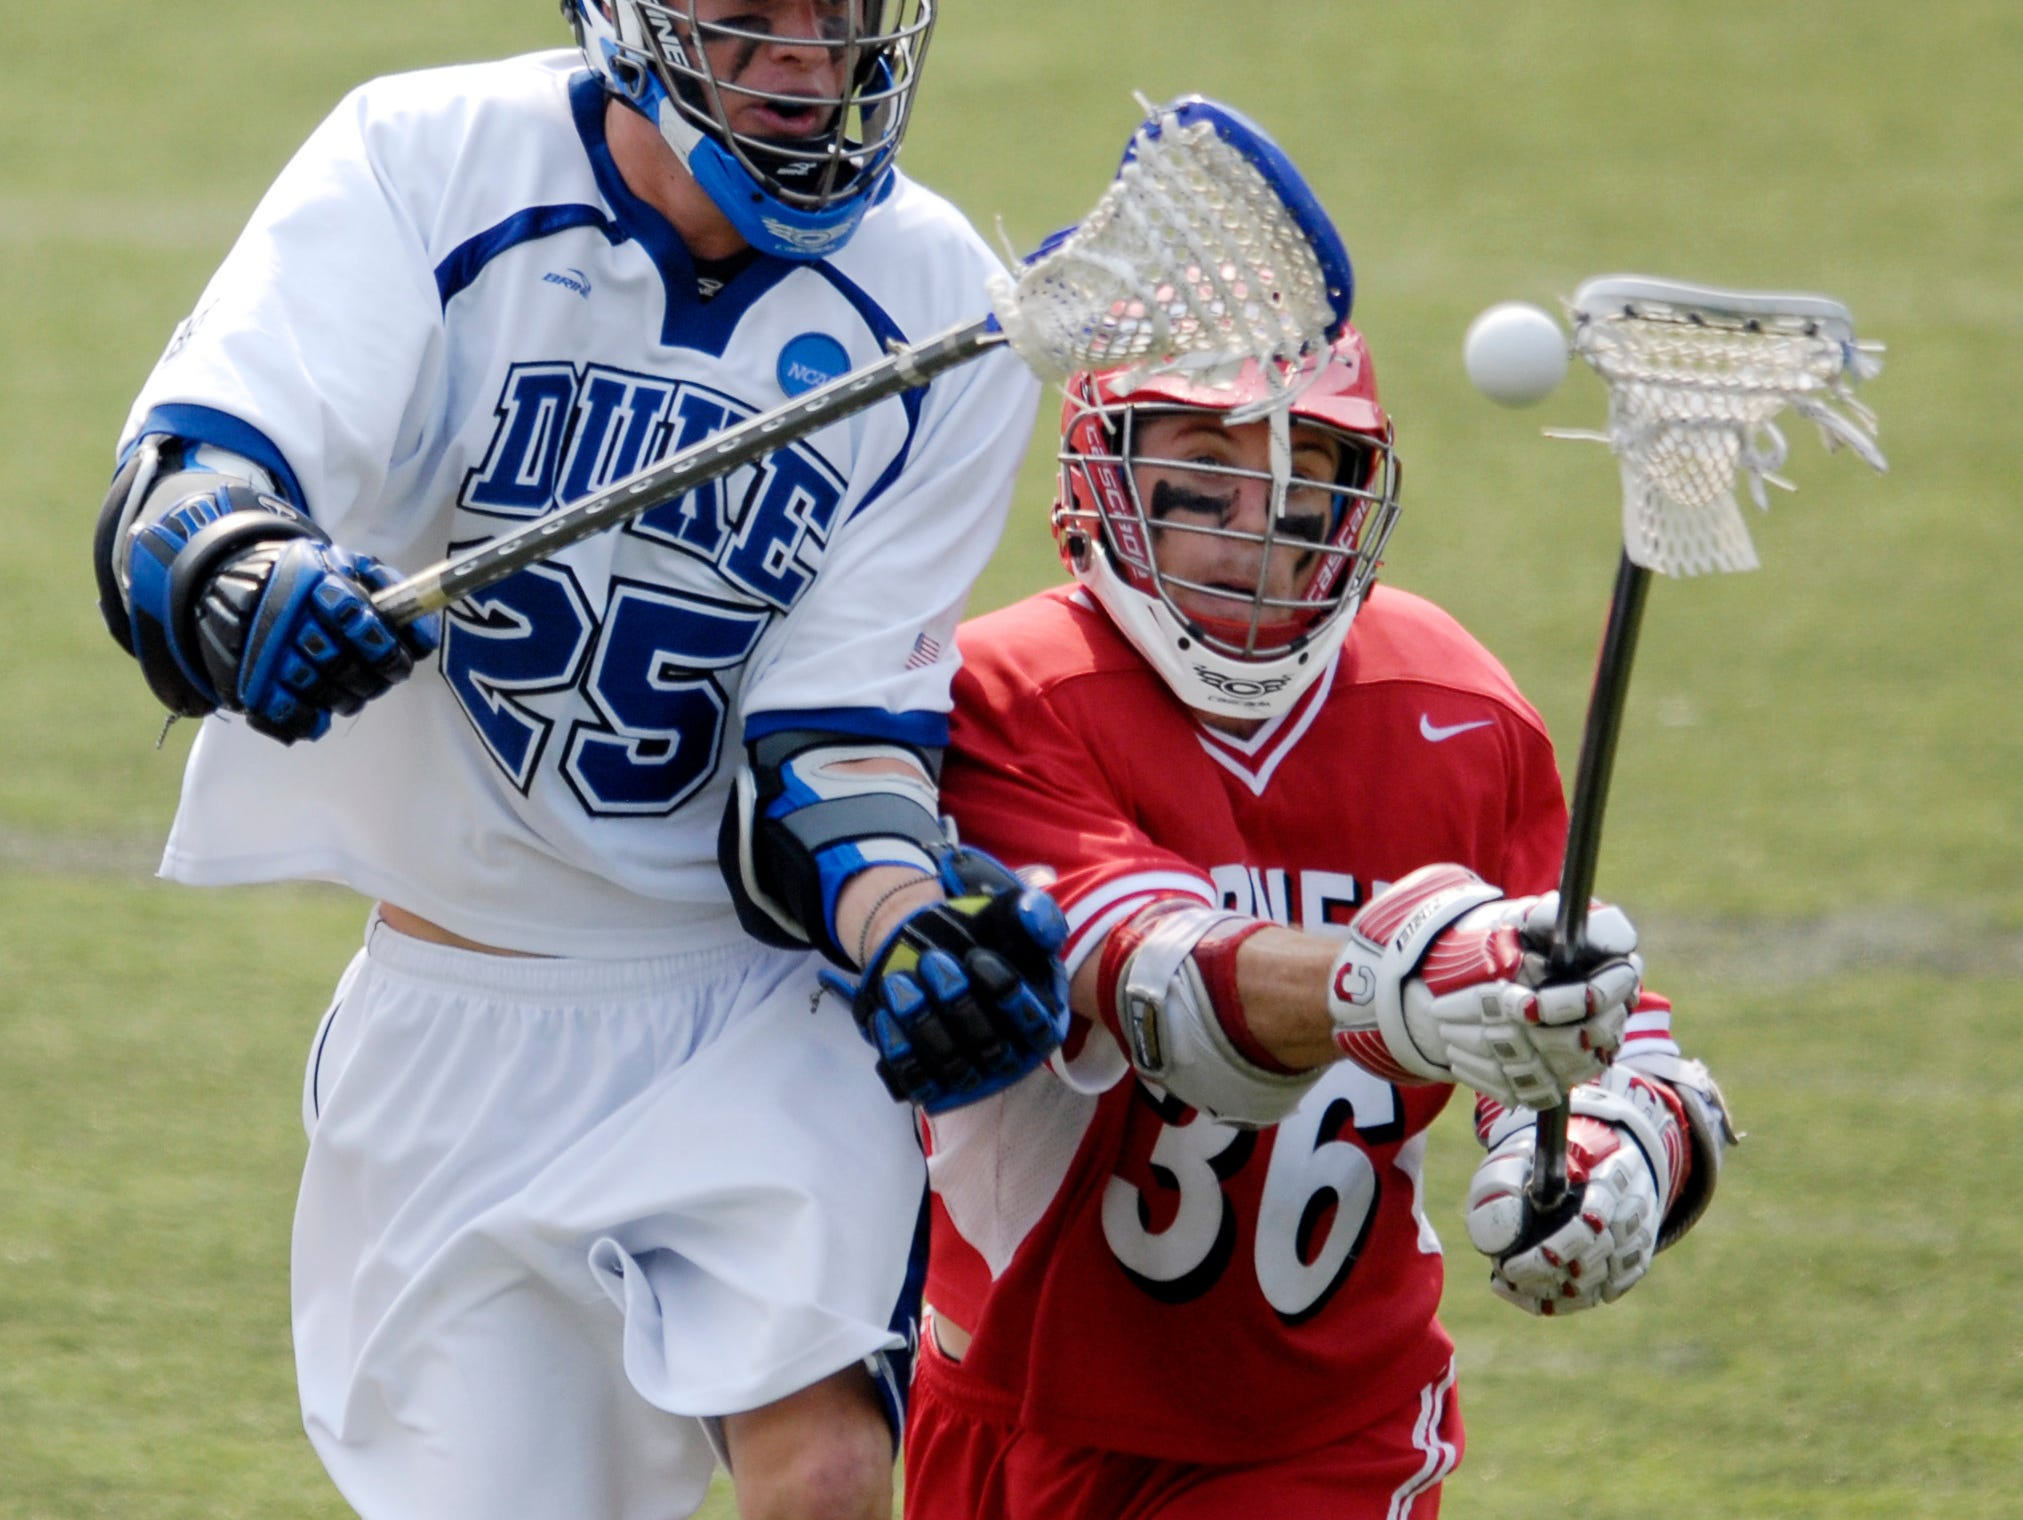 Duke's Zack Greer (25) fights for the ball against Cornell's Mitch Belisle (36) during a division one NCAA lacrosse semifinal game, Saturday, May 26, 2007, in Baltimore. Duke won 12-11.